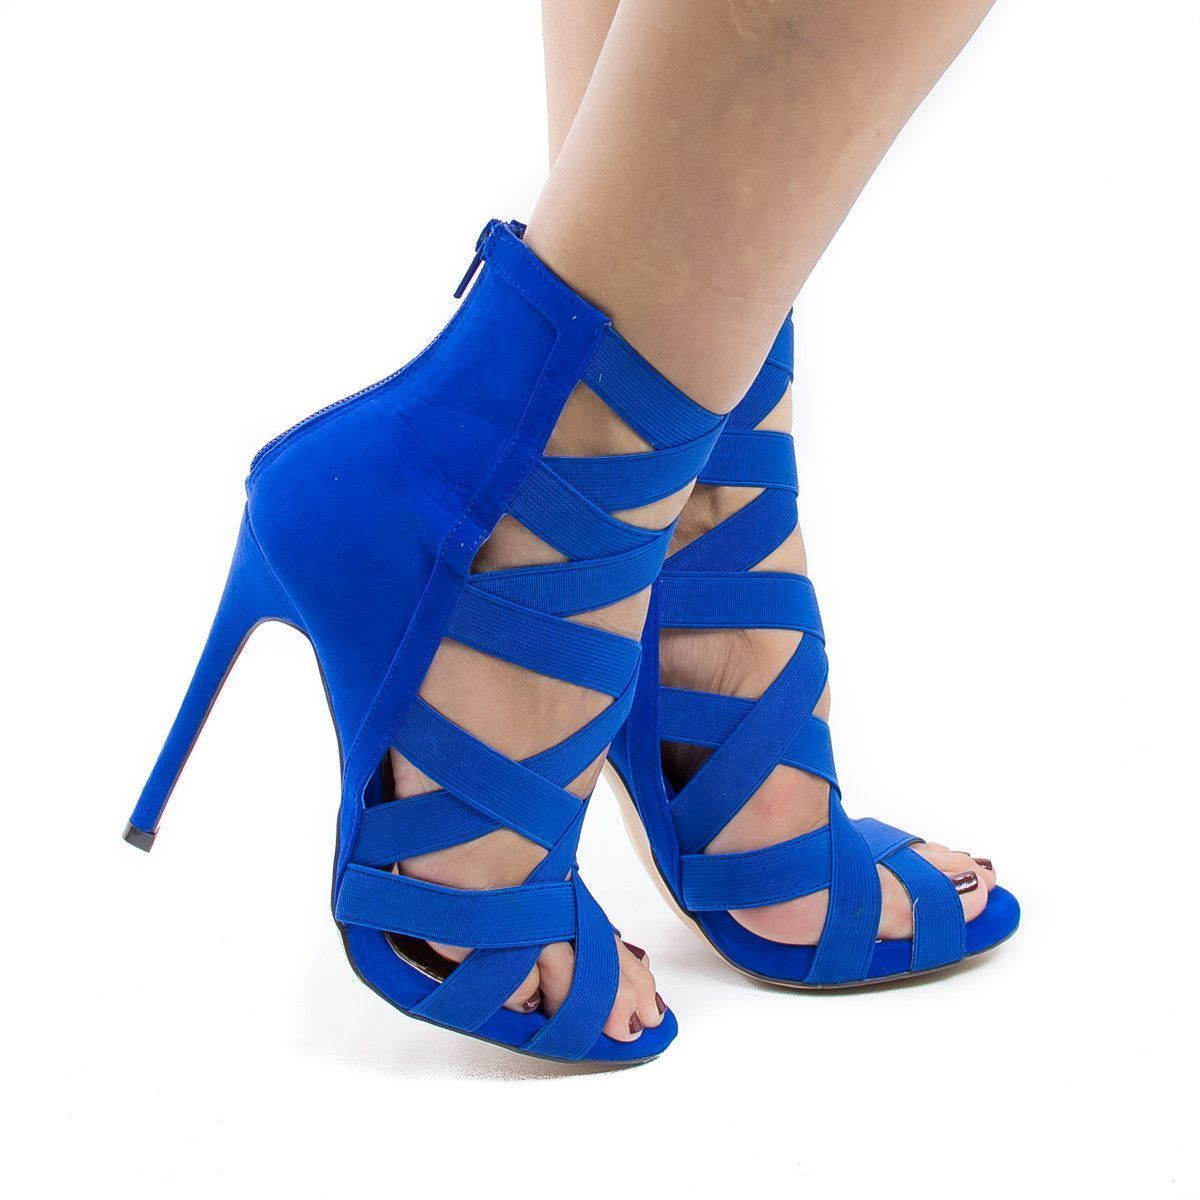 Make heads turn with these multi elastic strappy stiletto high heels, featuring a peep toe opening, contrast stitching, multi elastic straps, a back center zipper for easy wear and closure, a slightly #strappystilettoheels